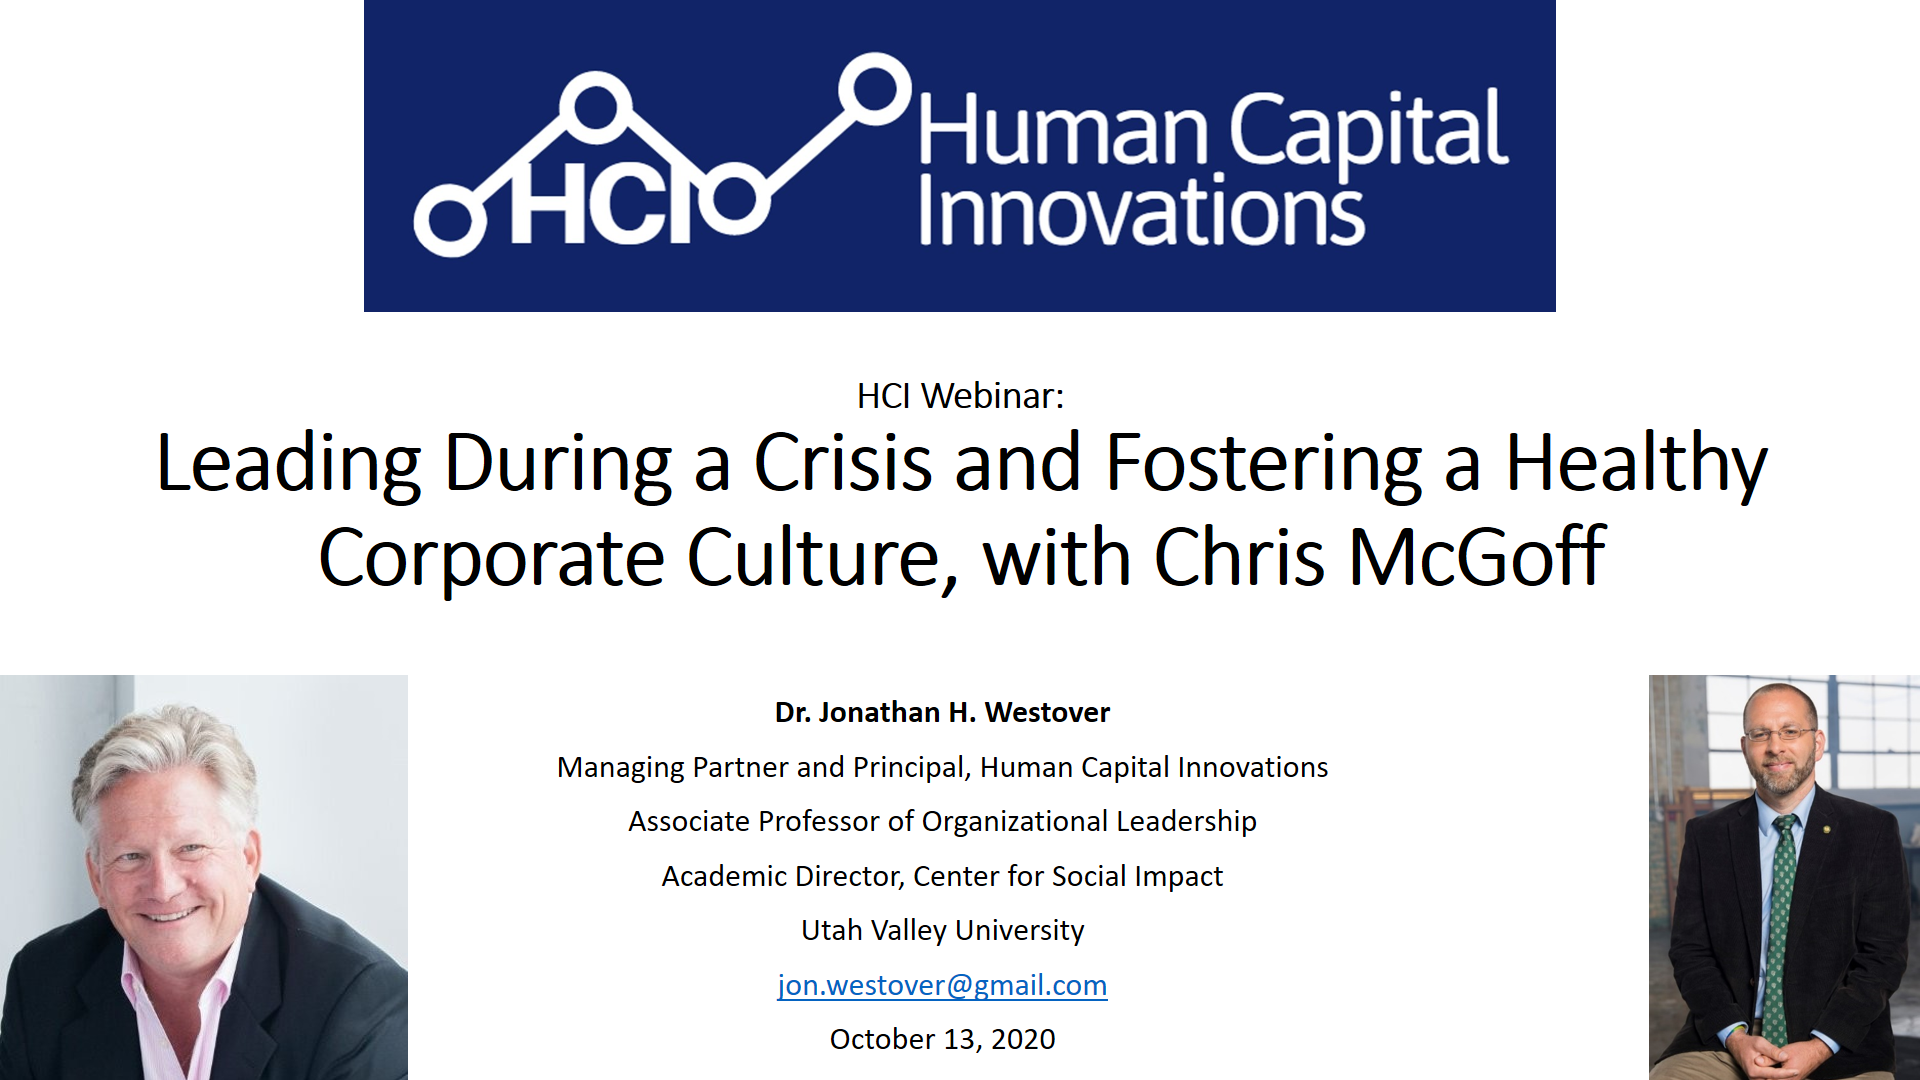 Leading During a Crisis and Fostering a Healthy Corporate Culture